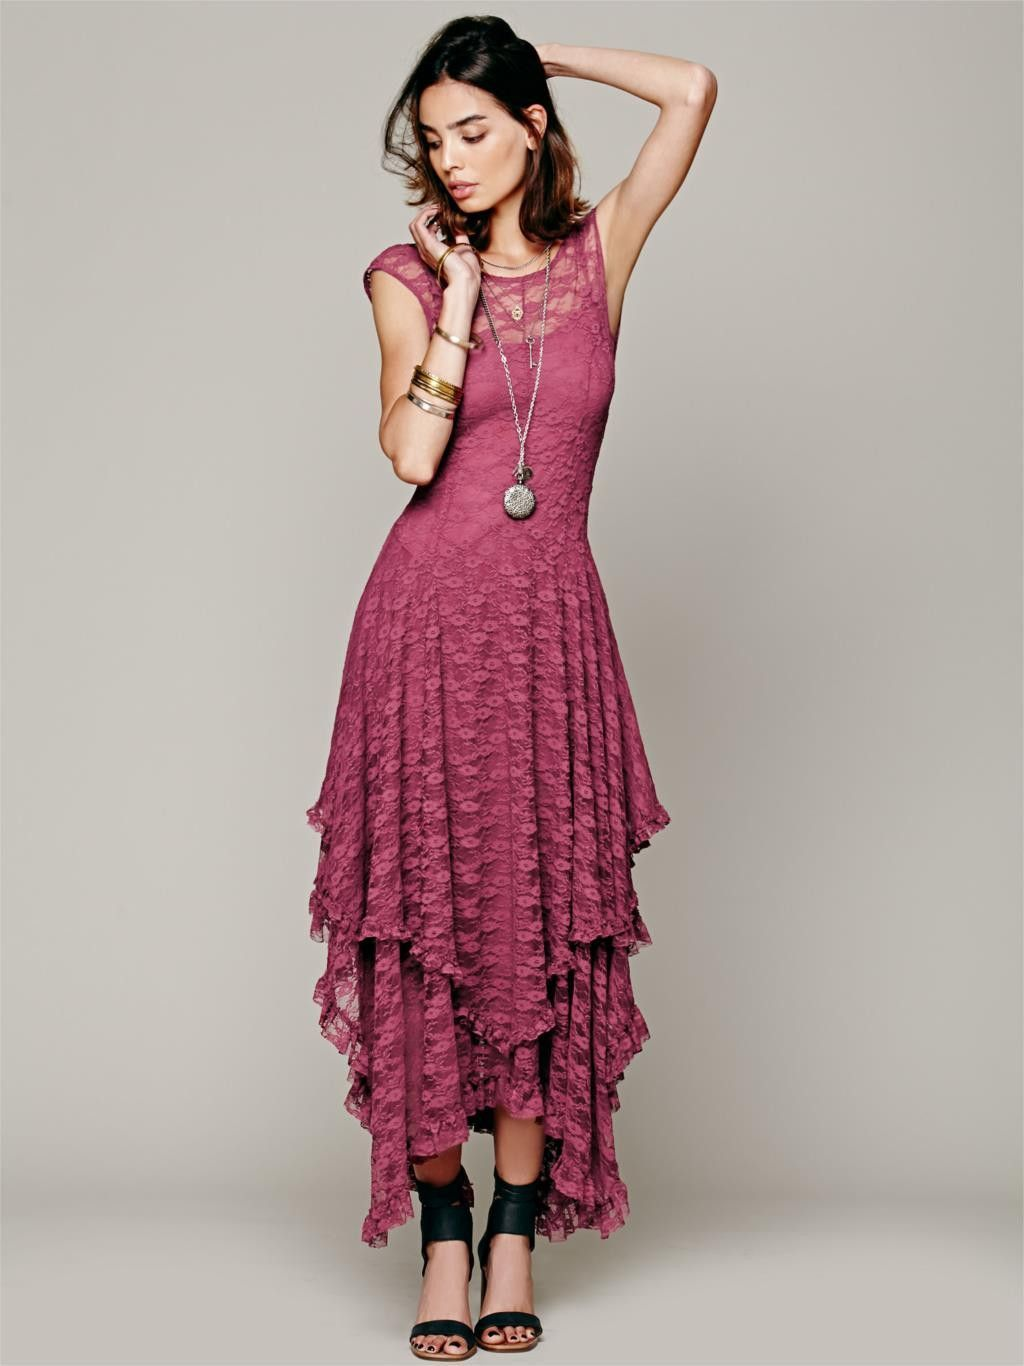 ca0b1803f3 Boho Chic hippie Style Asymmetrical Embroidery Sheer lace dresses ...